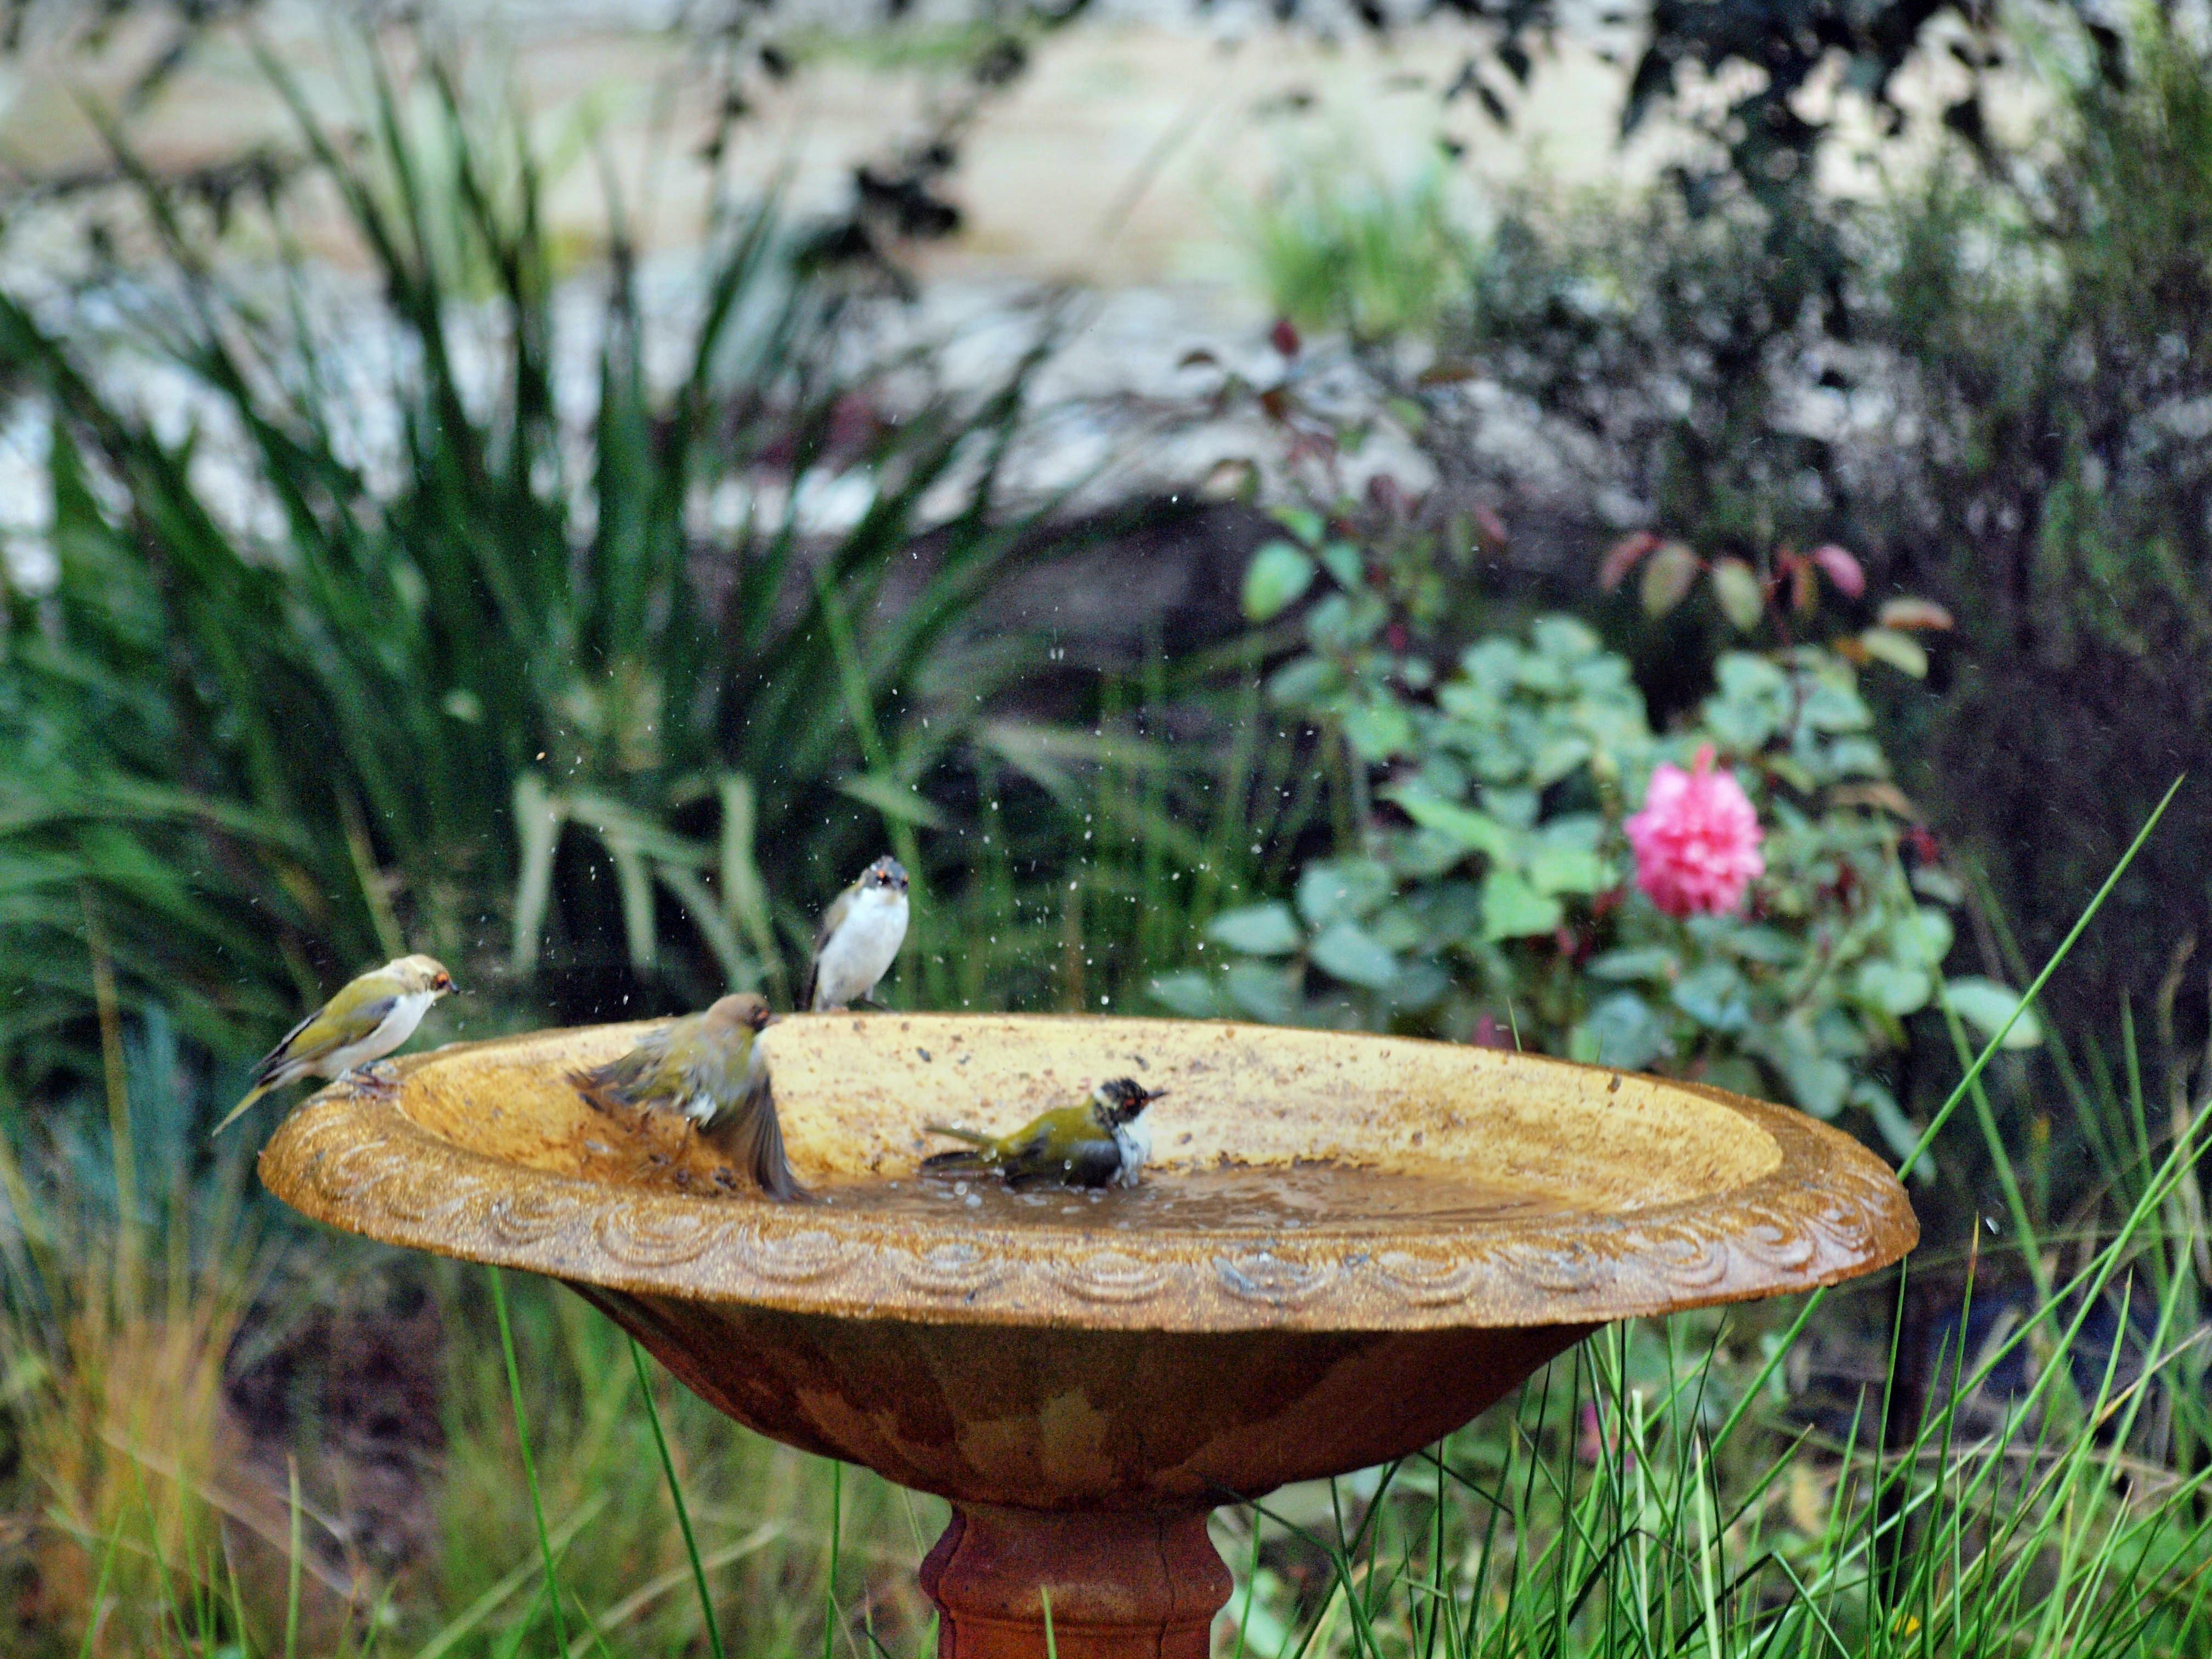 Bird-bath-41.jpeg